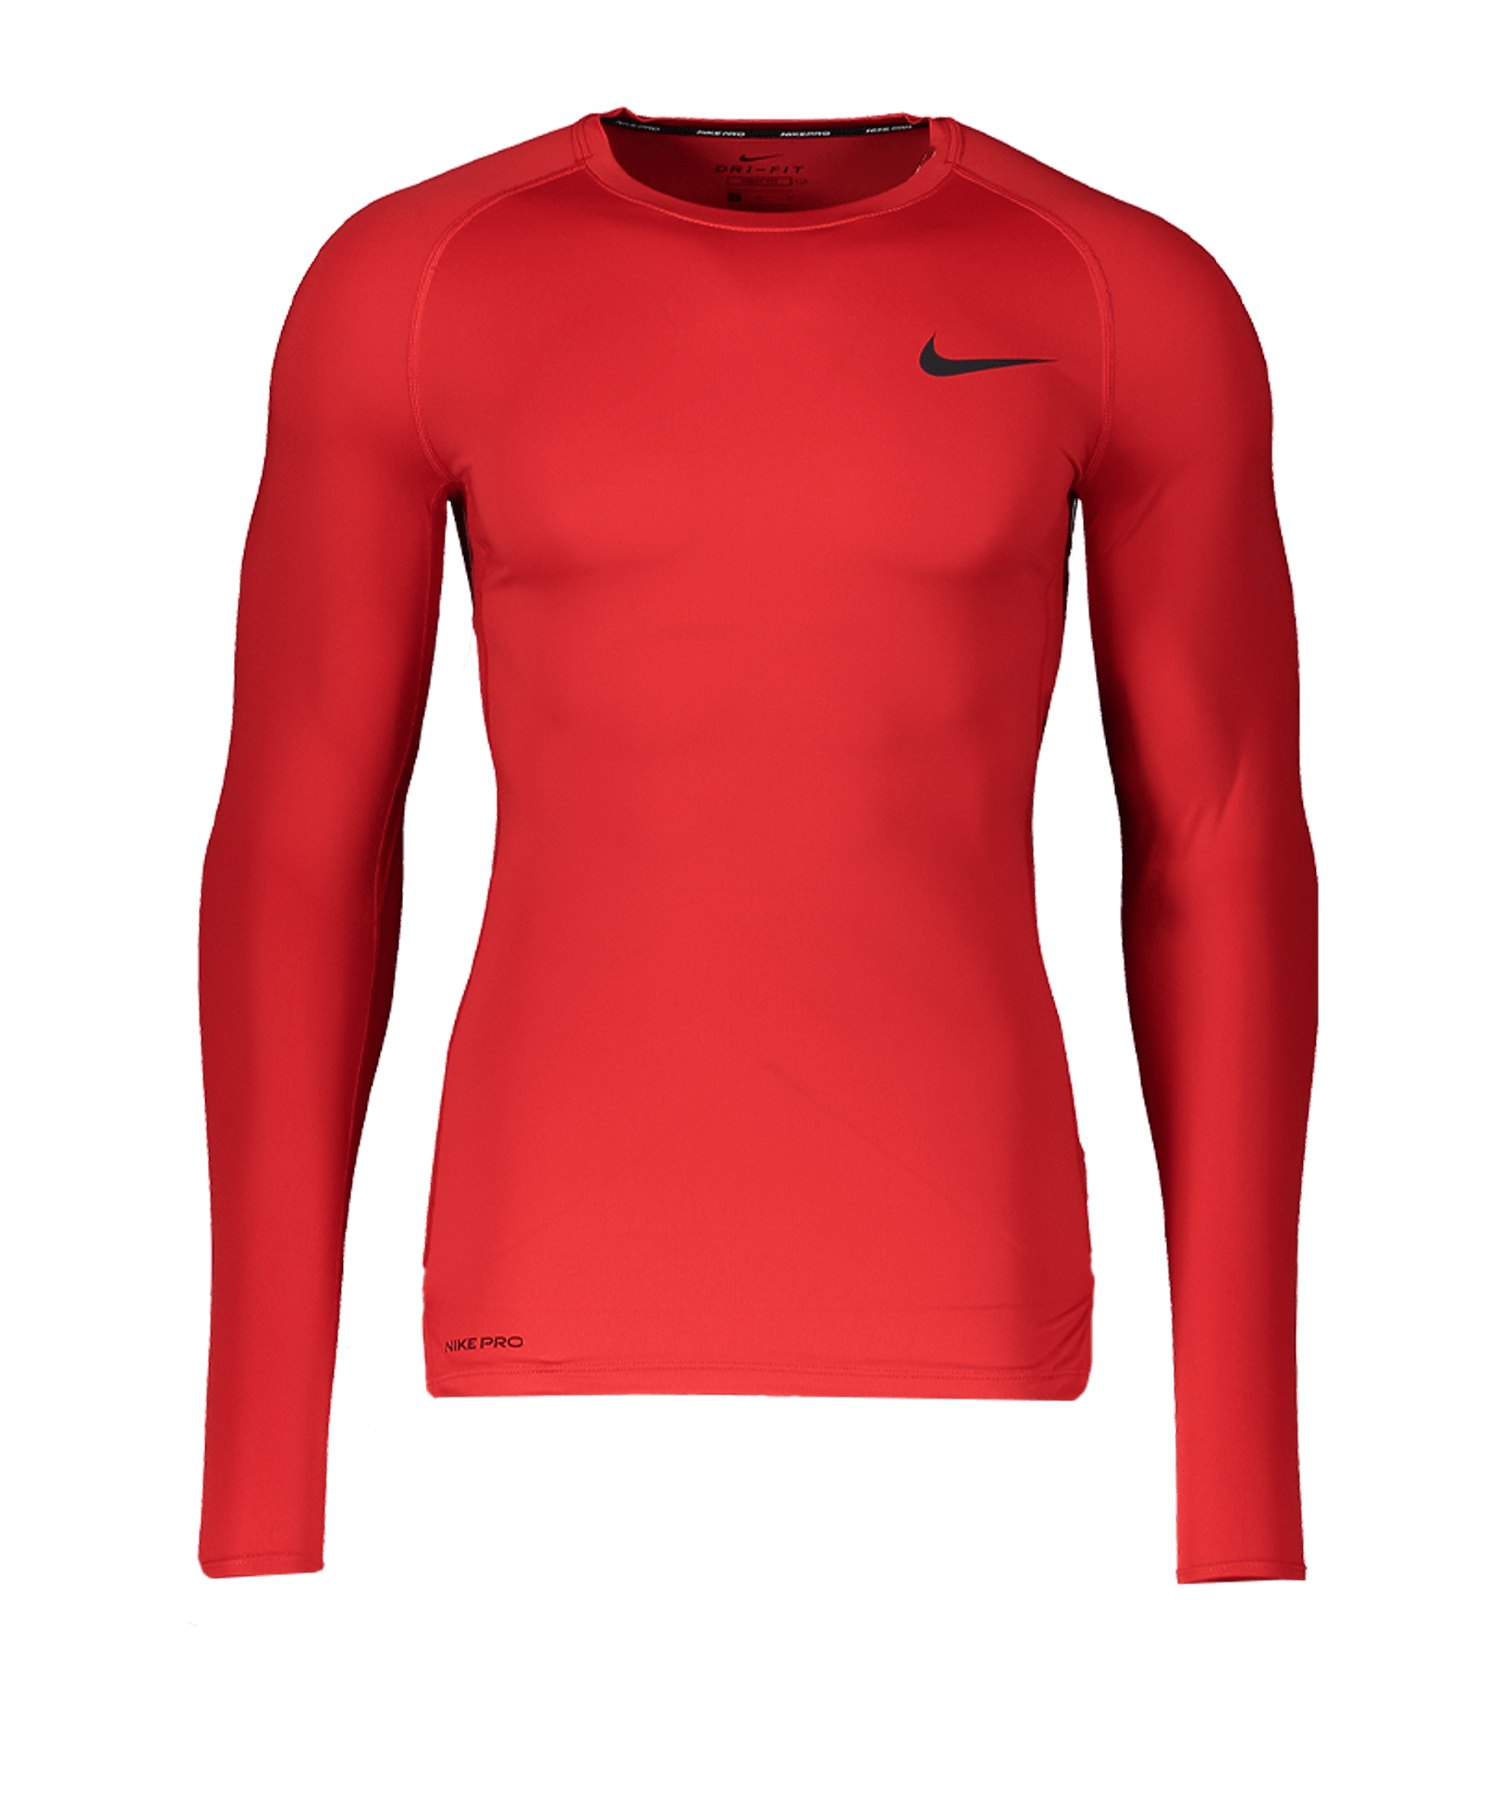 Nike Pro Mens Long-Sleeve Top Rot F657 - rot